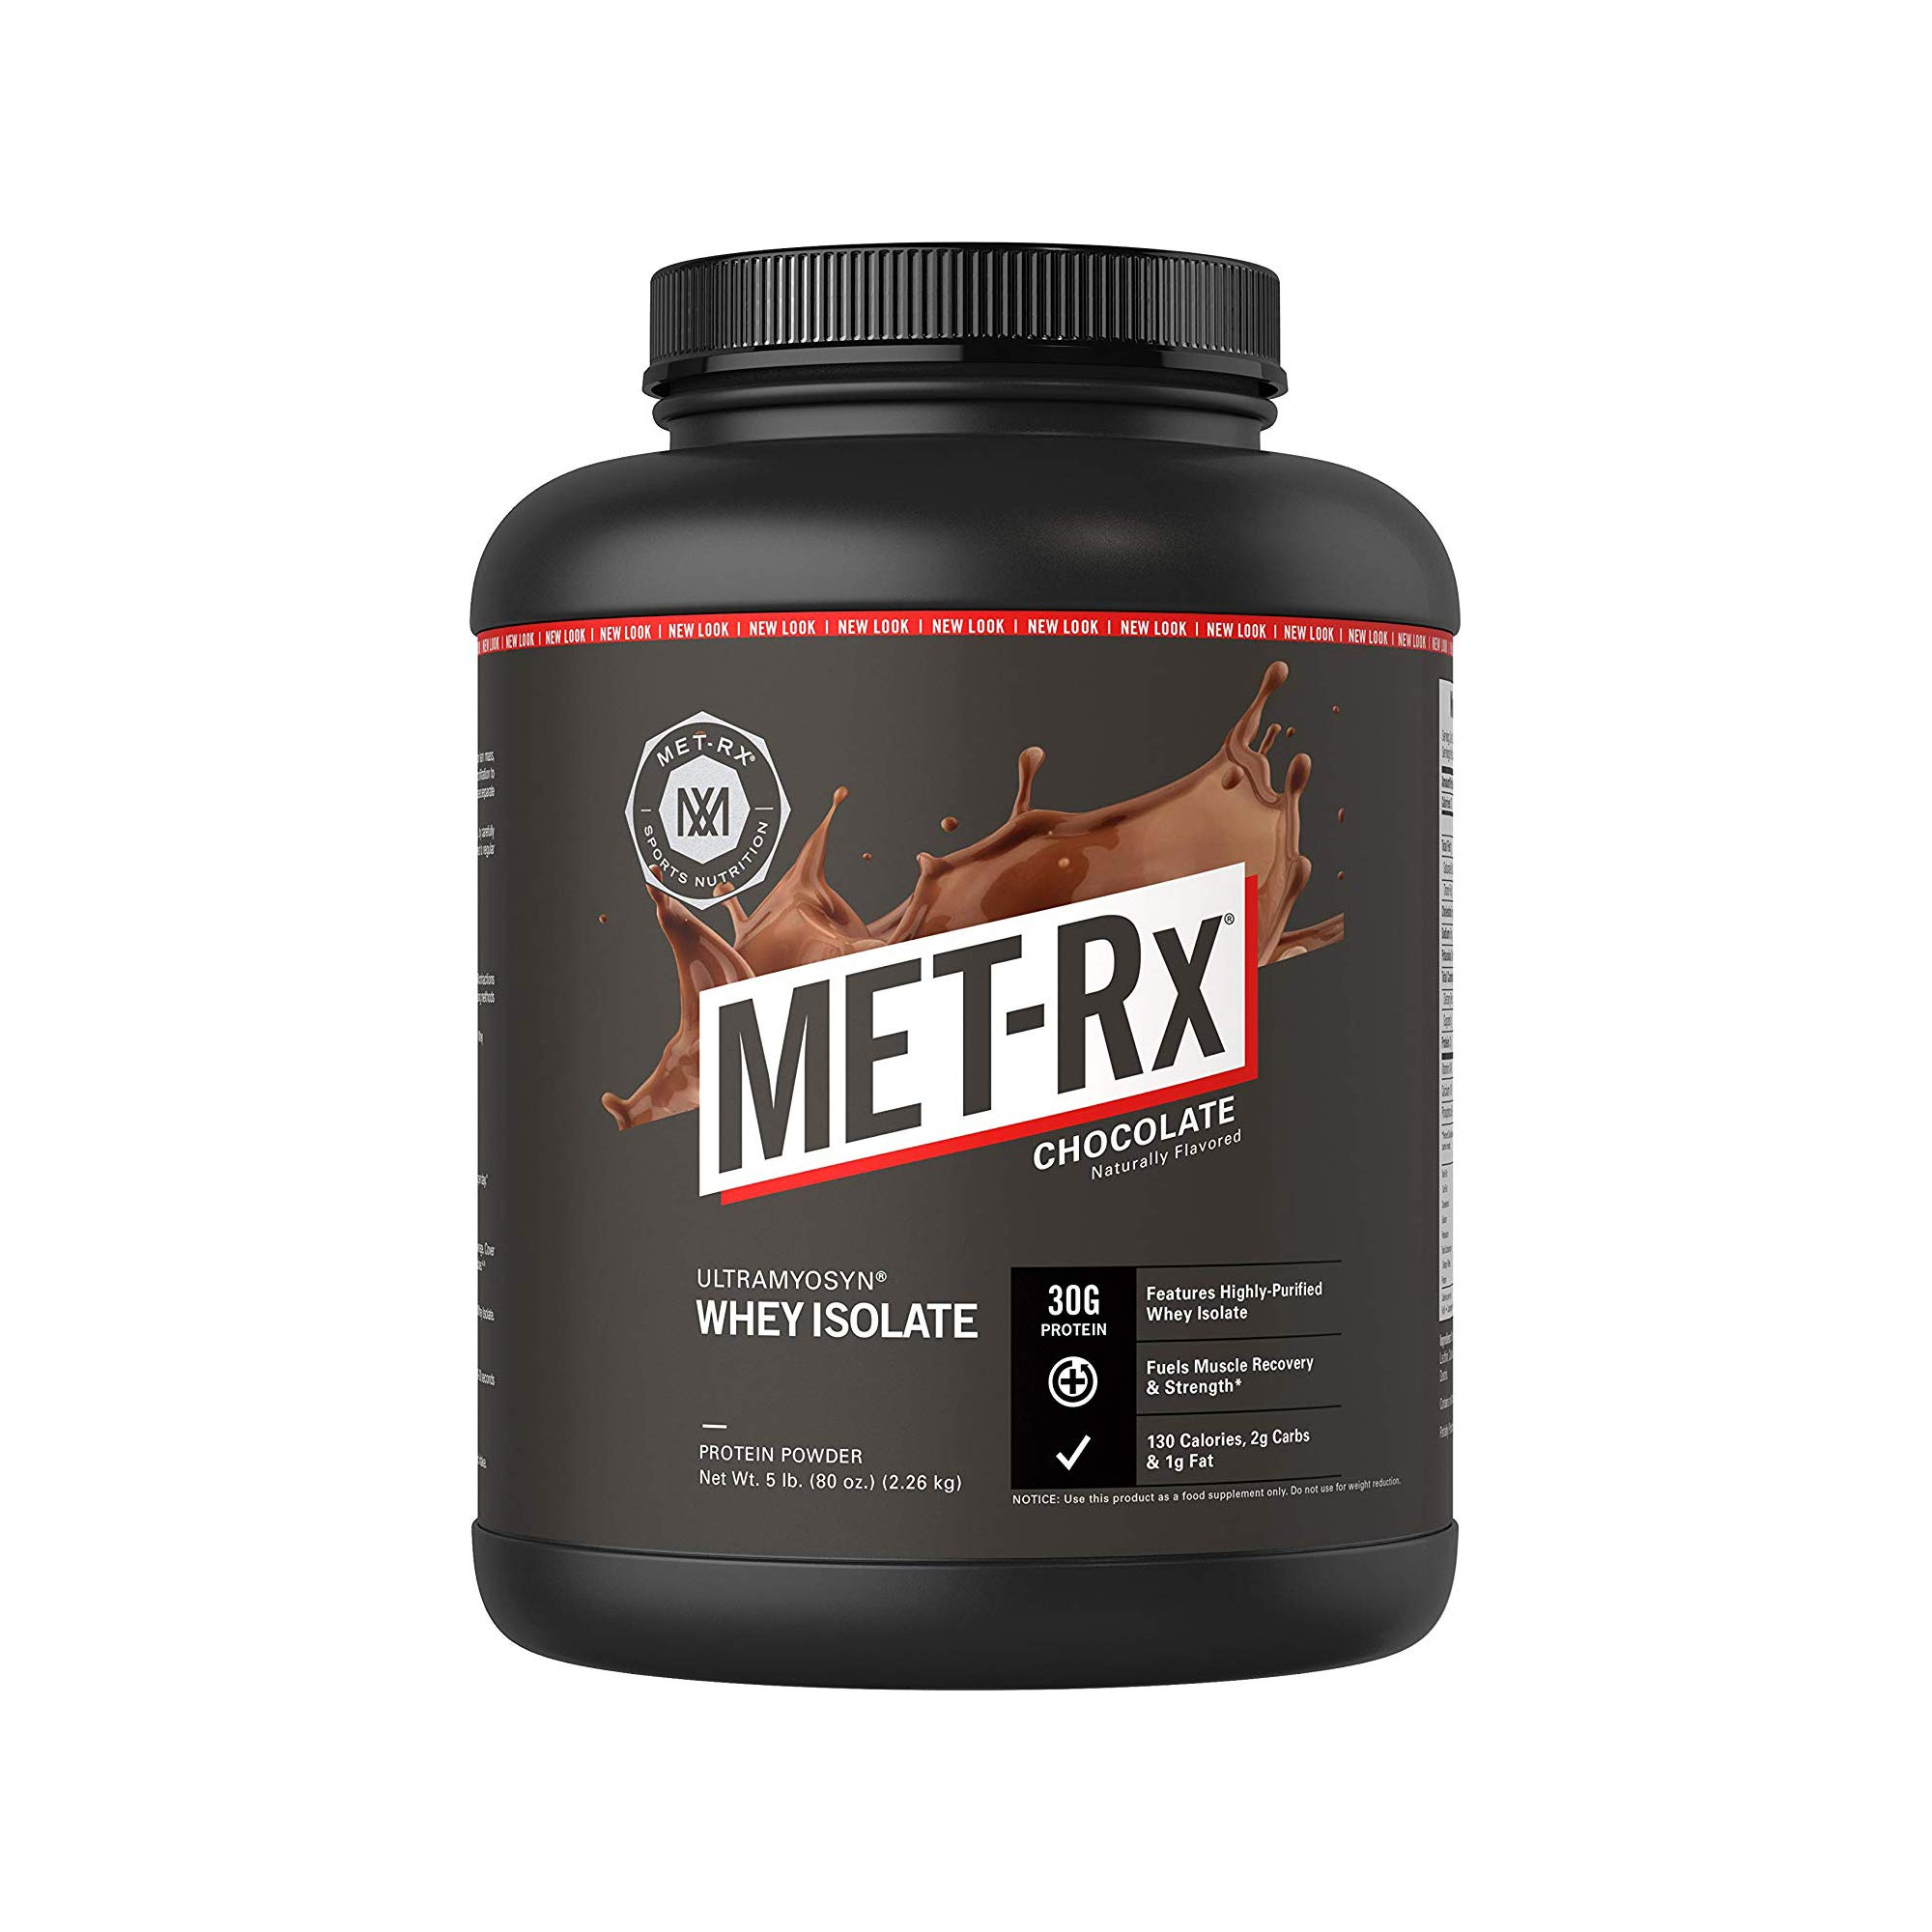 MET-Rx Ultramyosyn Whey Protein Isolate Powder, Great for Meal Replacement Shakes, Low Carb, Gluten Free, Chocolate, 5 lbs by MET-Rx